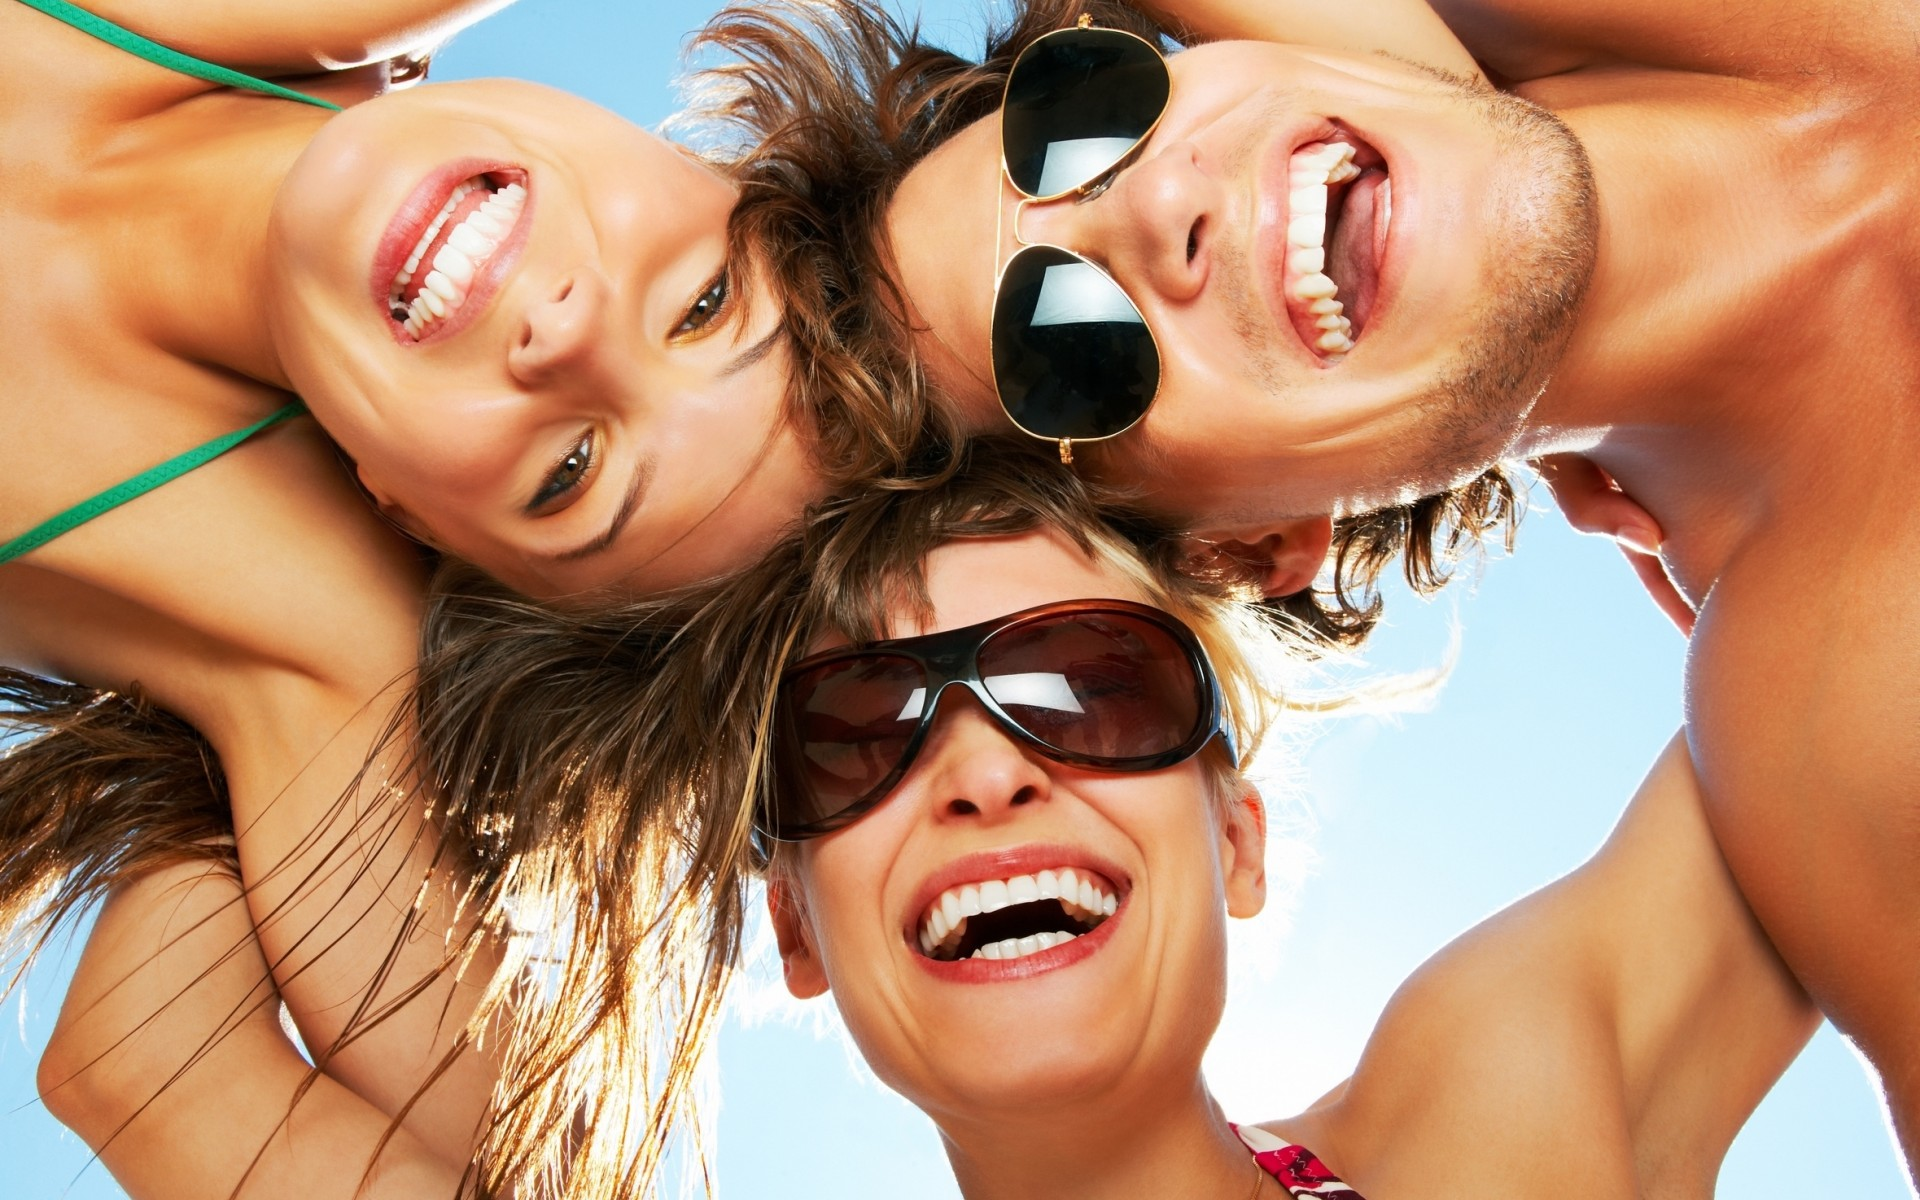 people__beach__sky__fun_summer_mood_glasses_face_eyes_smile_women_females_girls_men_males_embrace_1920x1200